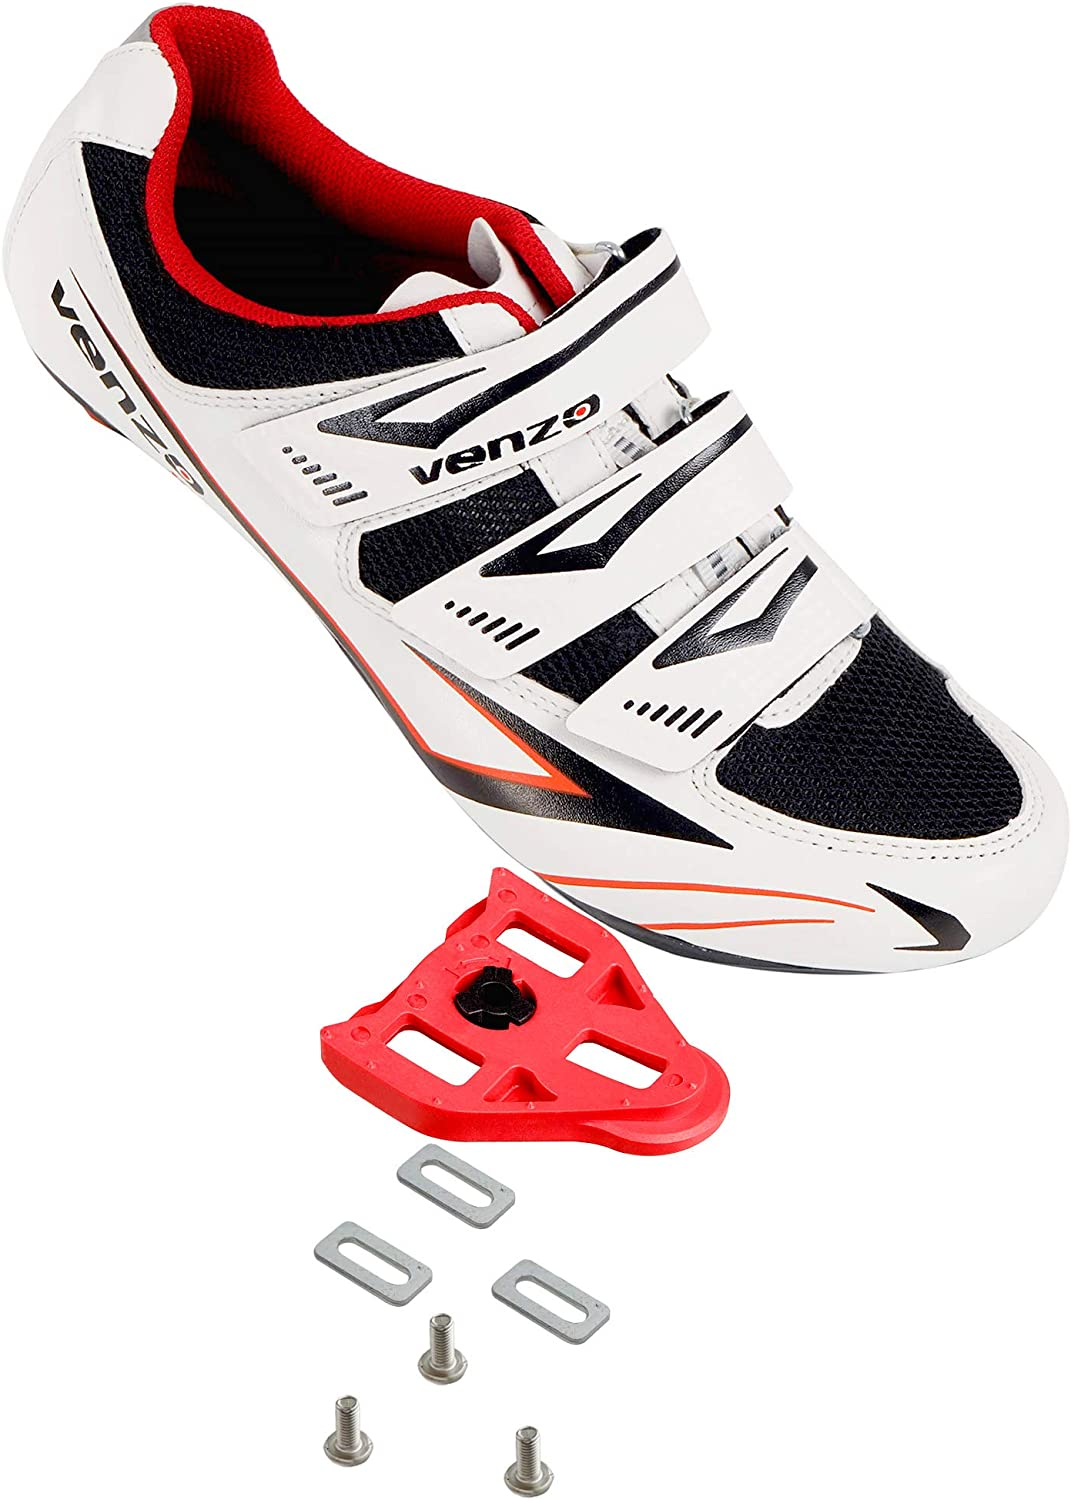 Venzo Bicycle Men's or Women's Road Cycling Riding Shoes